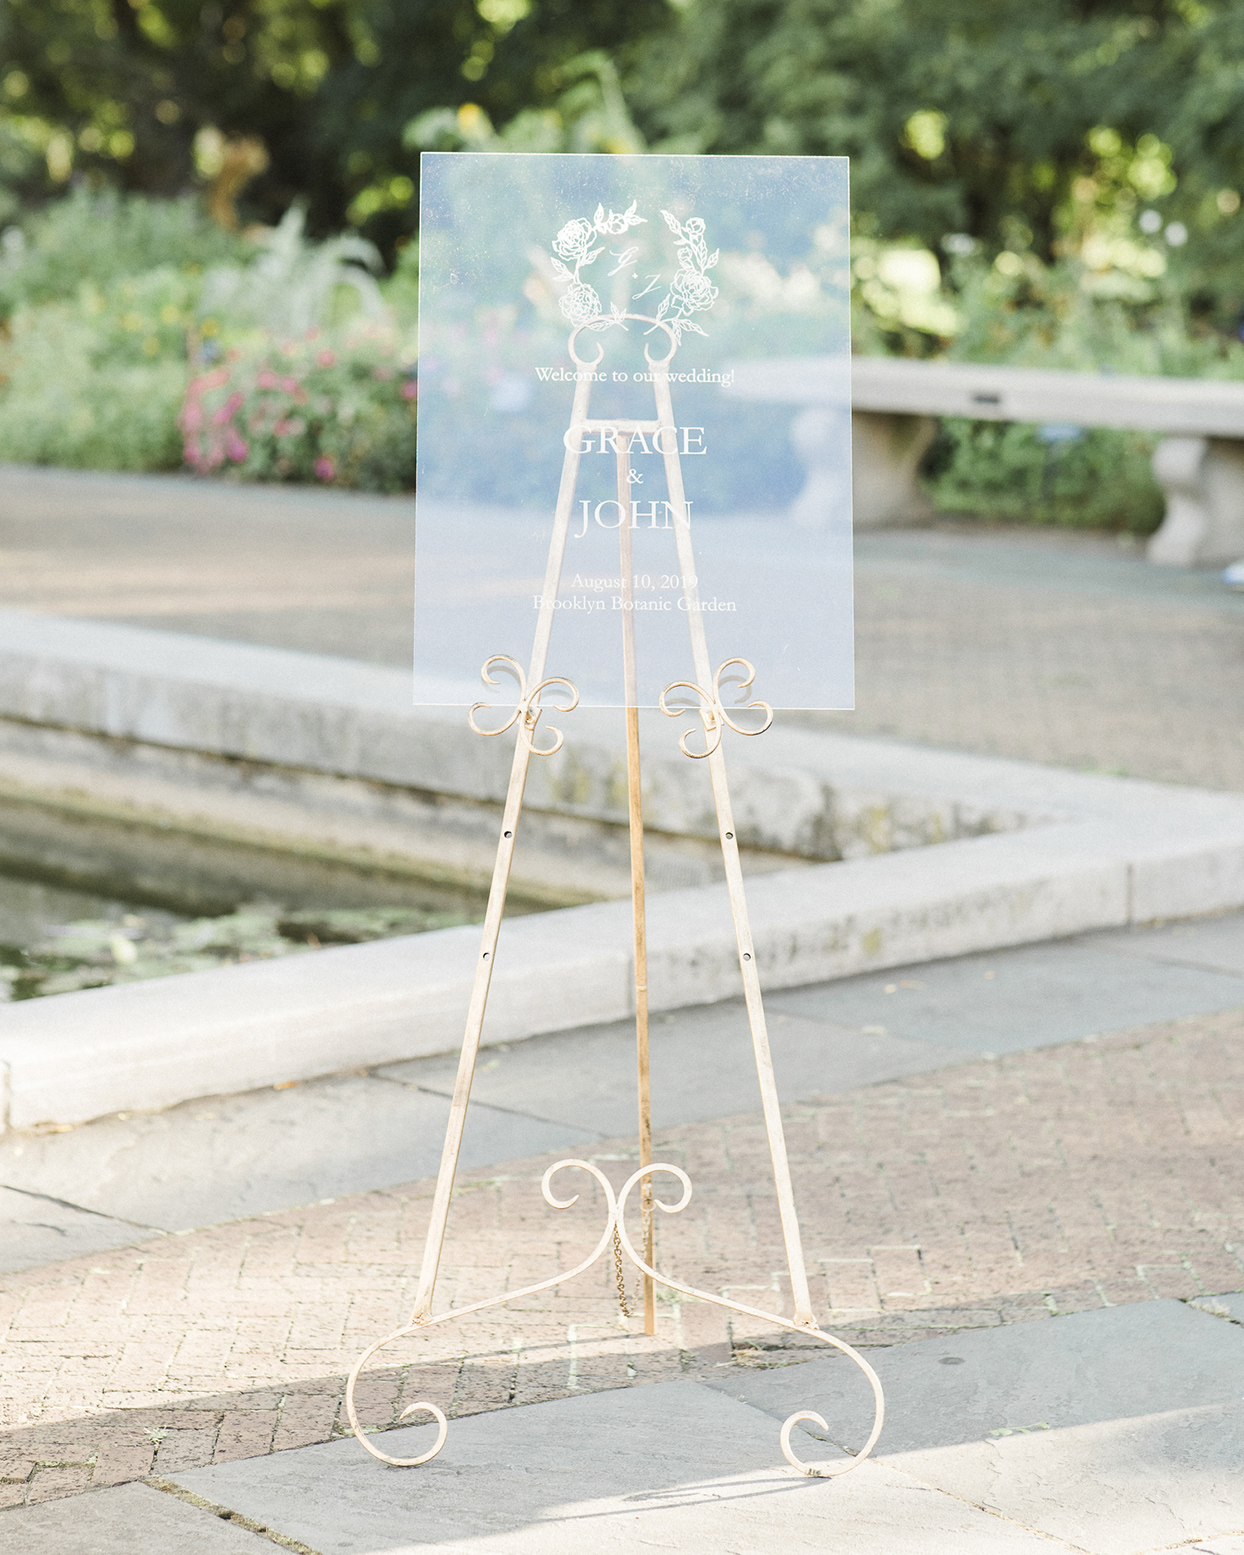 grace john wedding lucite sign at botanic center